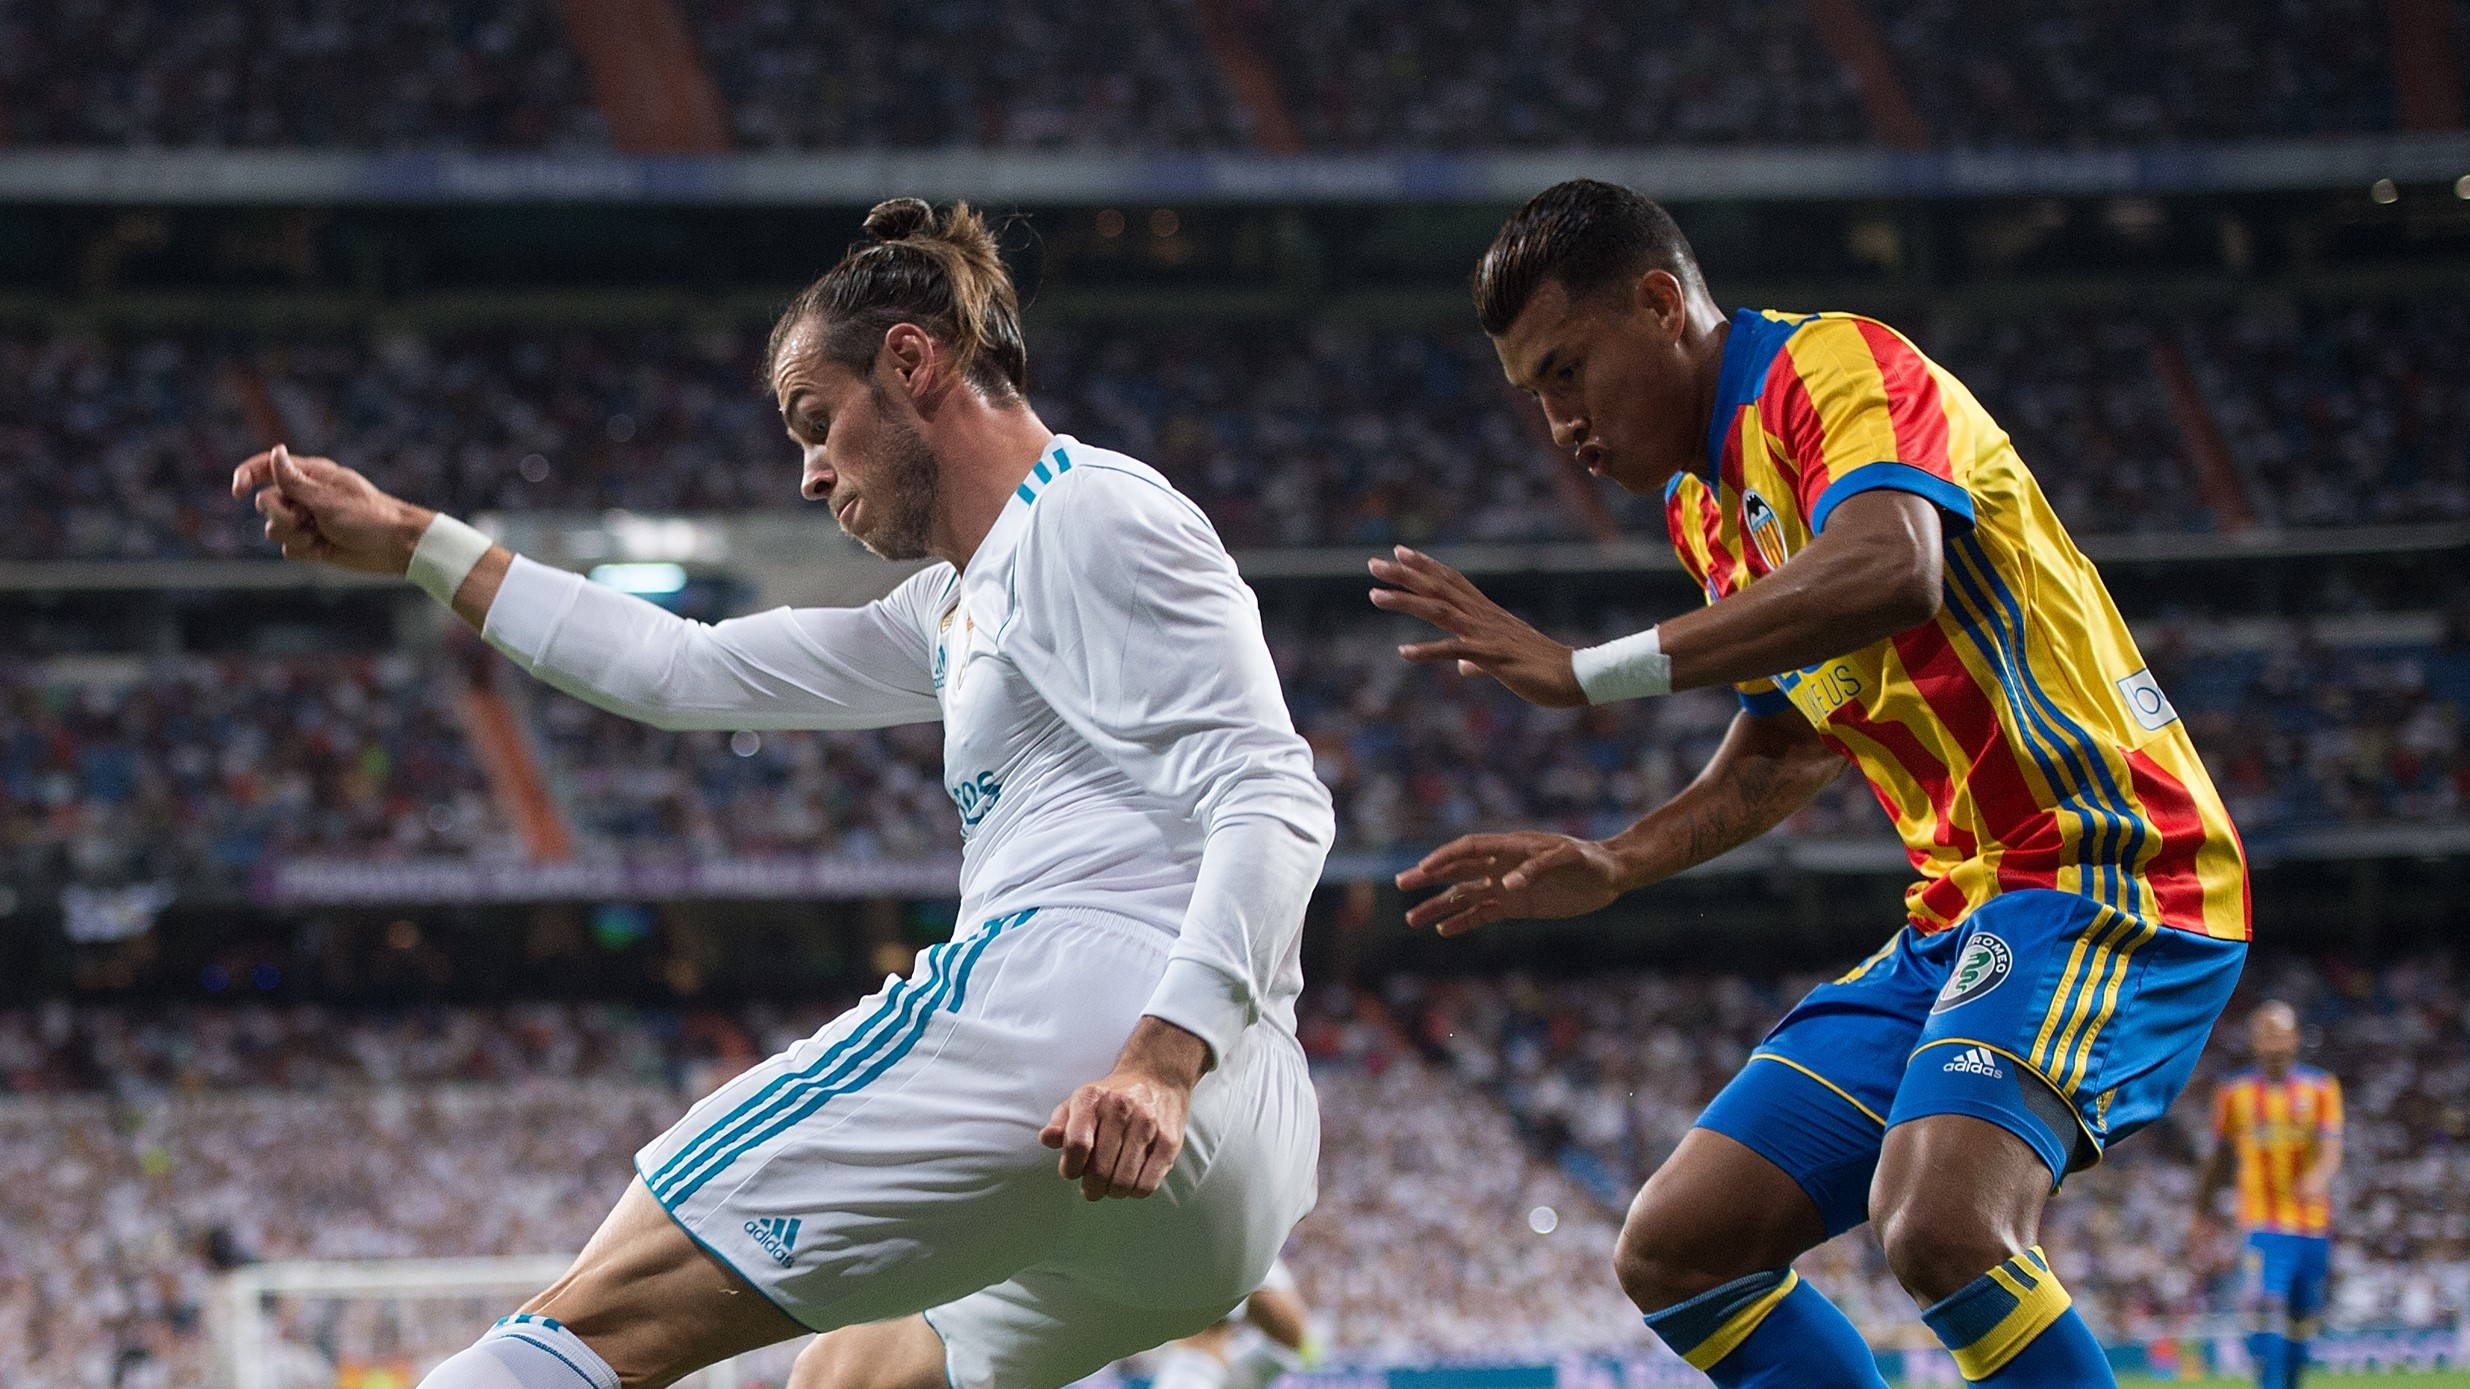 En vivo: Real Madrid vs Valencia